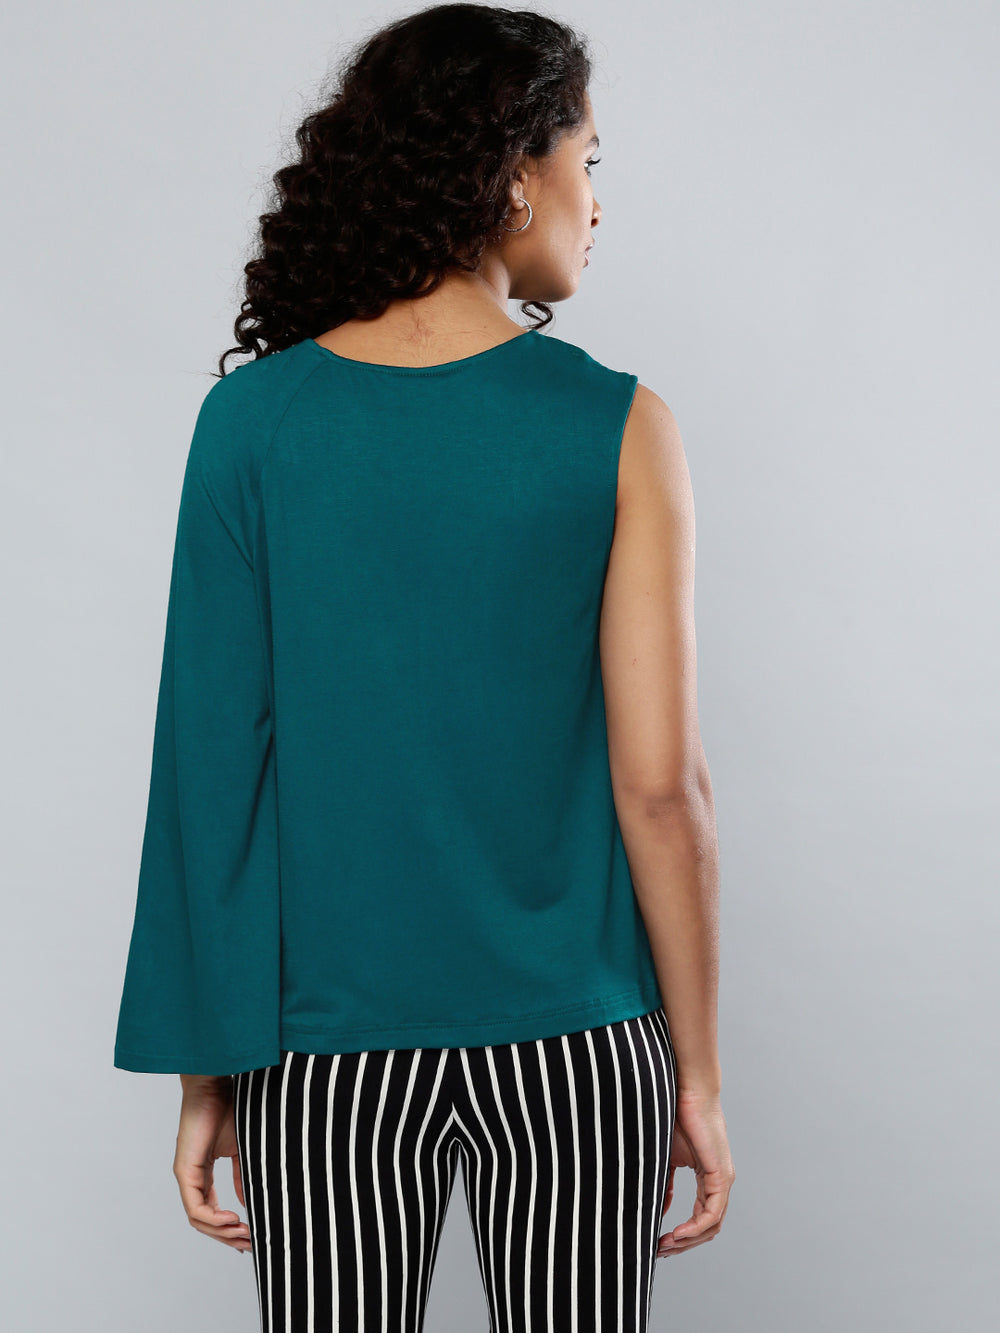 Besiva Women Green Solid Top